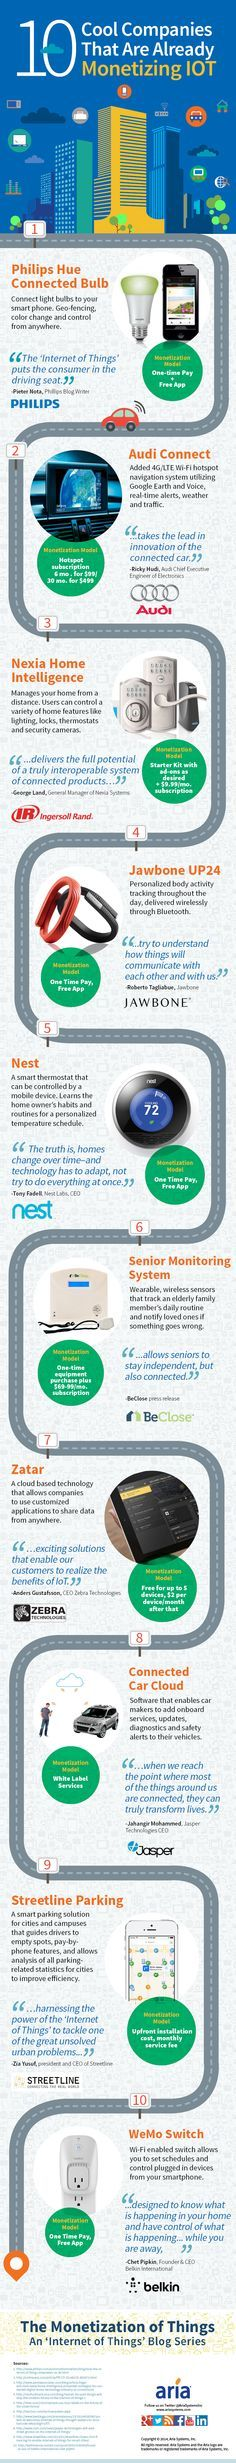 10 Cool Companies That Are Already Monetizing IOT #infographic #infografía